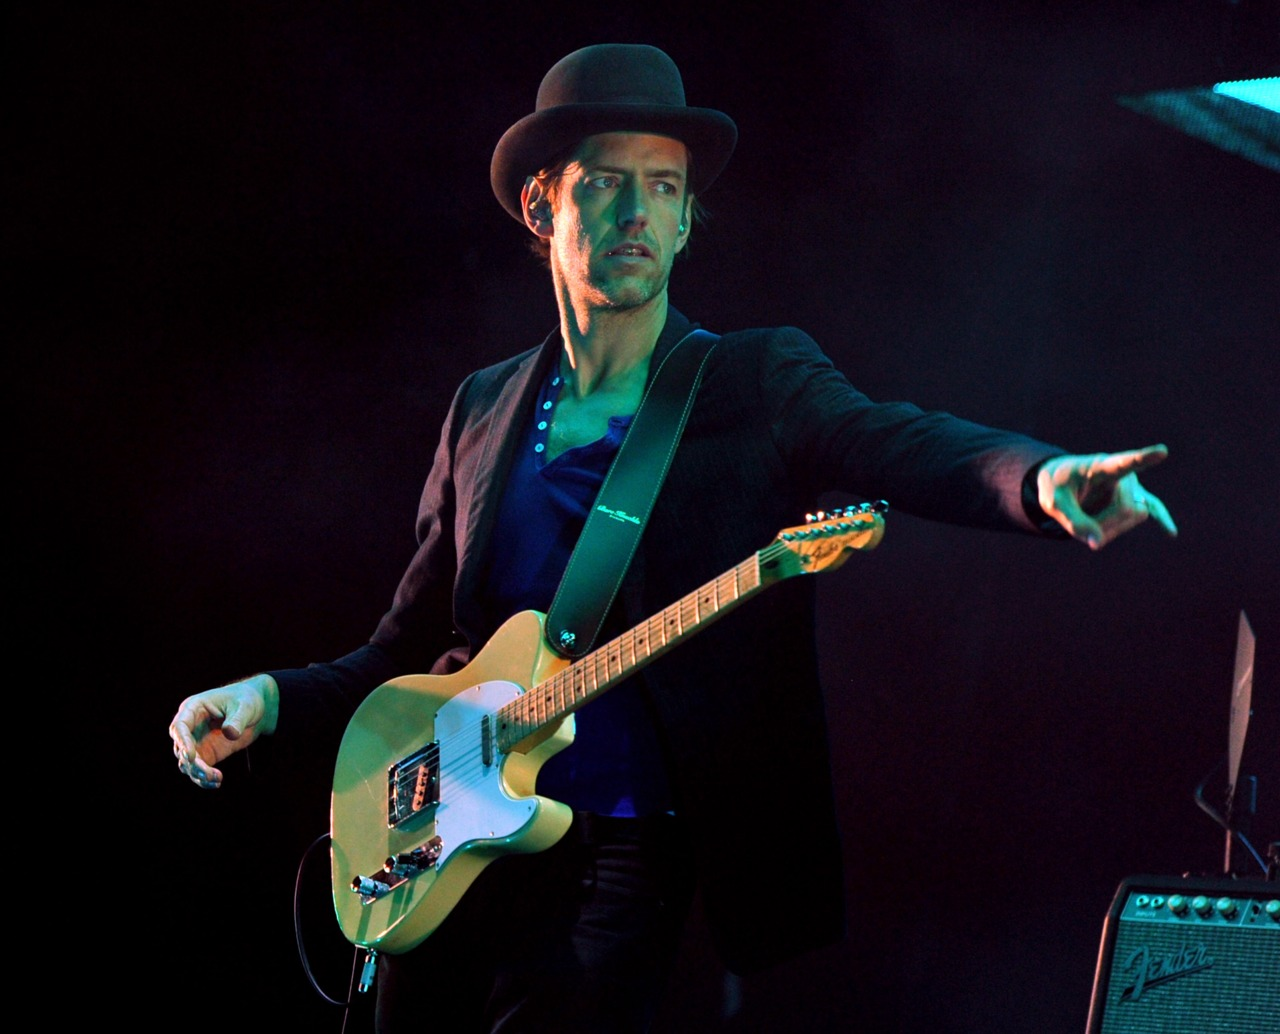 INDIO, CA - APRIL 14:  Musician Ed O'Brien of Radiohead performs onstage during day 2 of the 2012 Coachella Valley Music & Arts Festival at the Empire Polo Field on April 14, 2012 in Indio, California.  (Photo by Kevin Winter/Getty Images for Coachella)